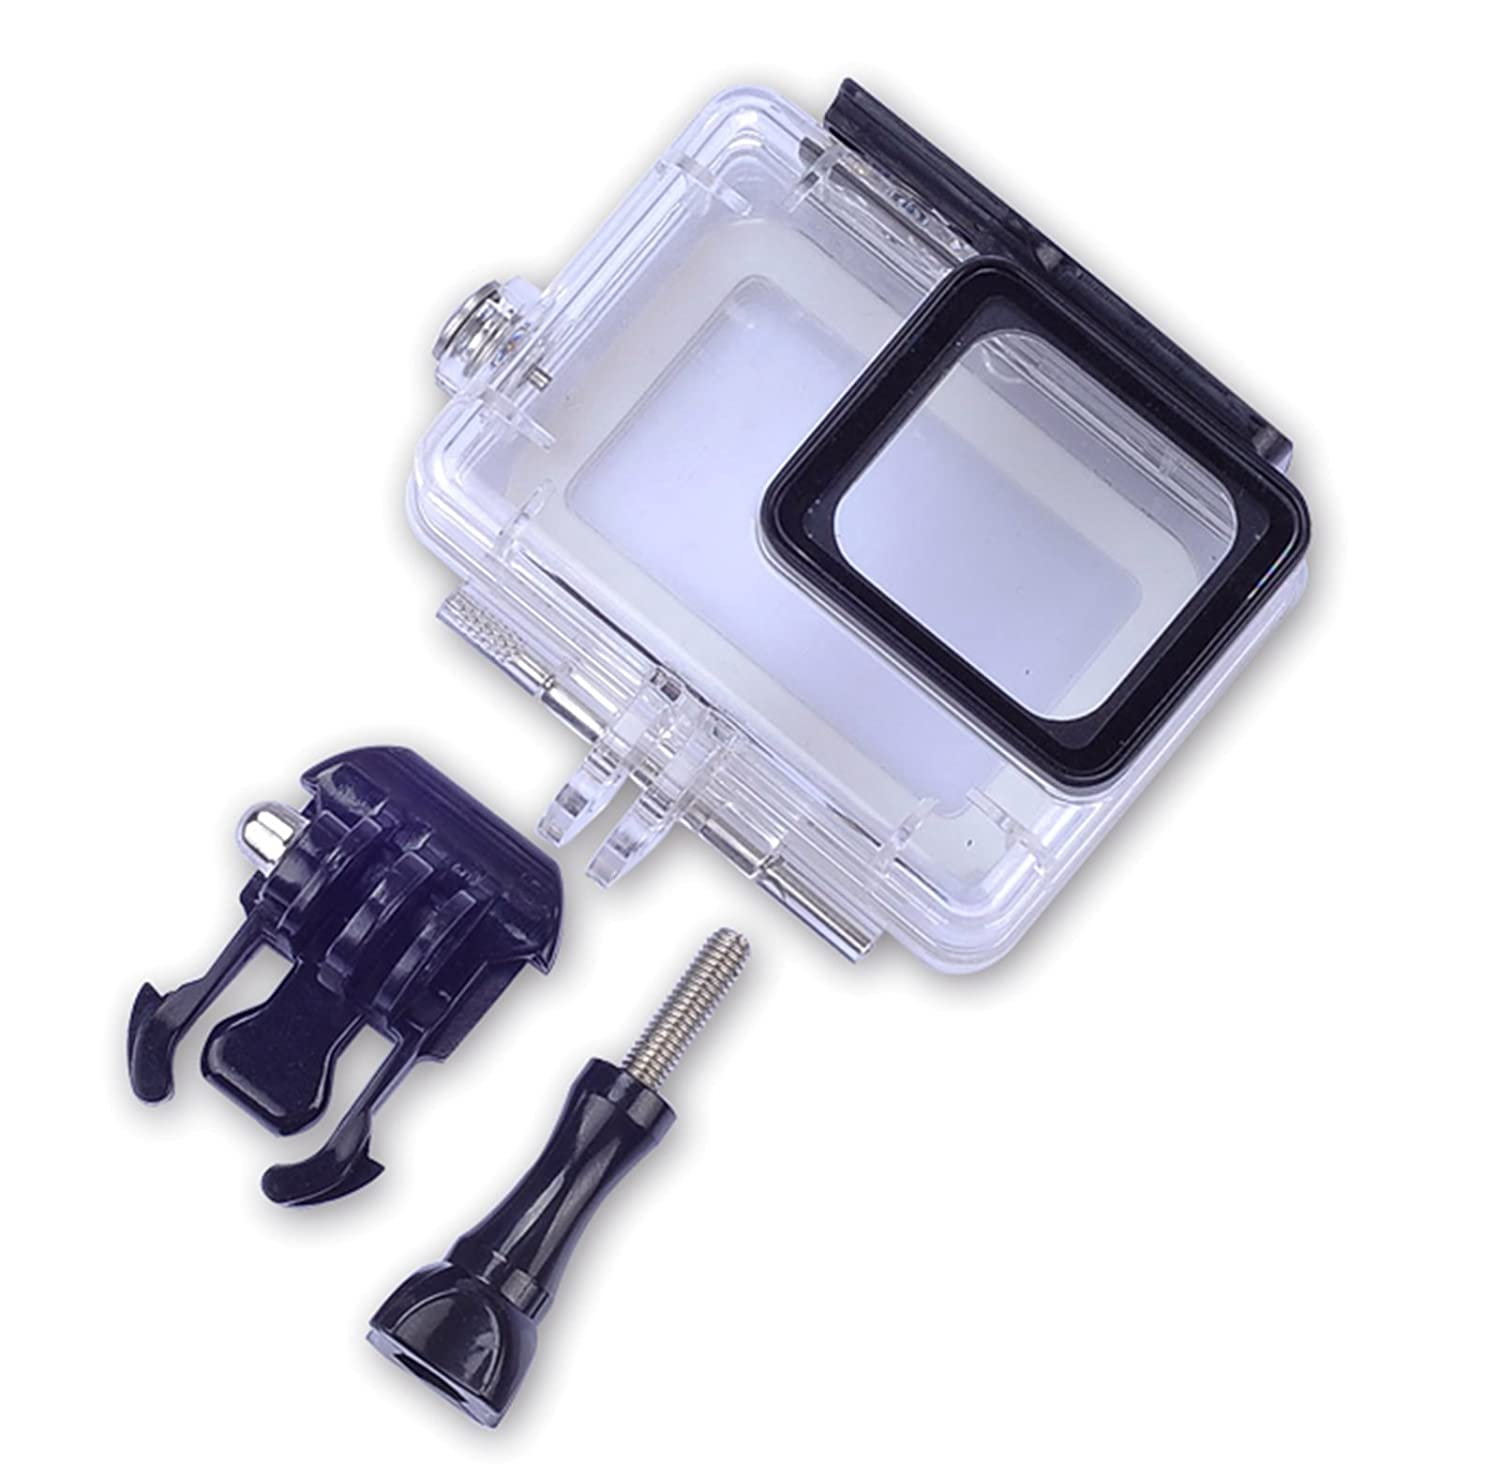 147ft Diving Waterproof Housing Protective Case Cover For GoPro Hero5 Black Sport Camera Accessories